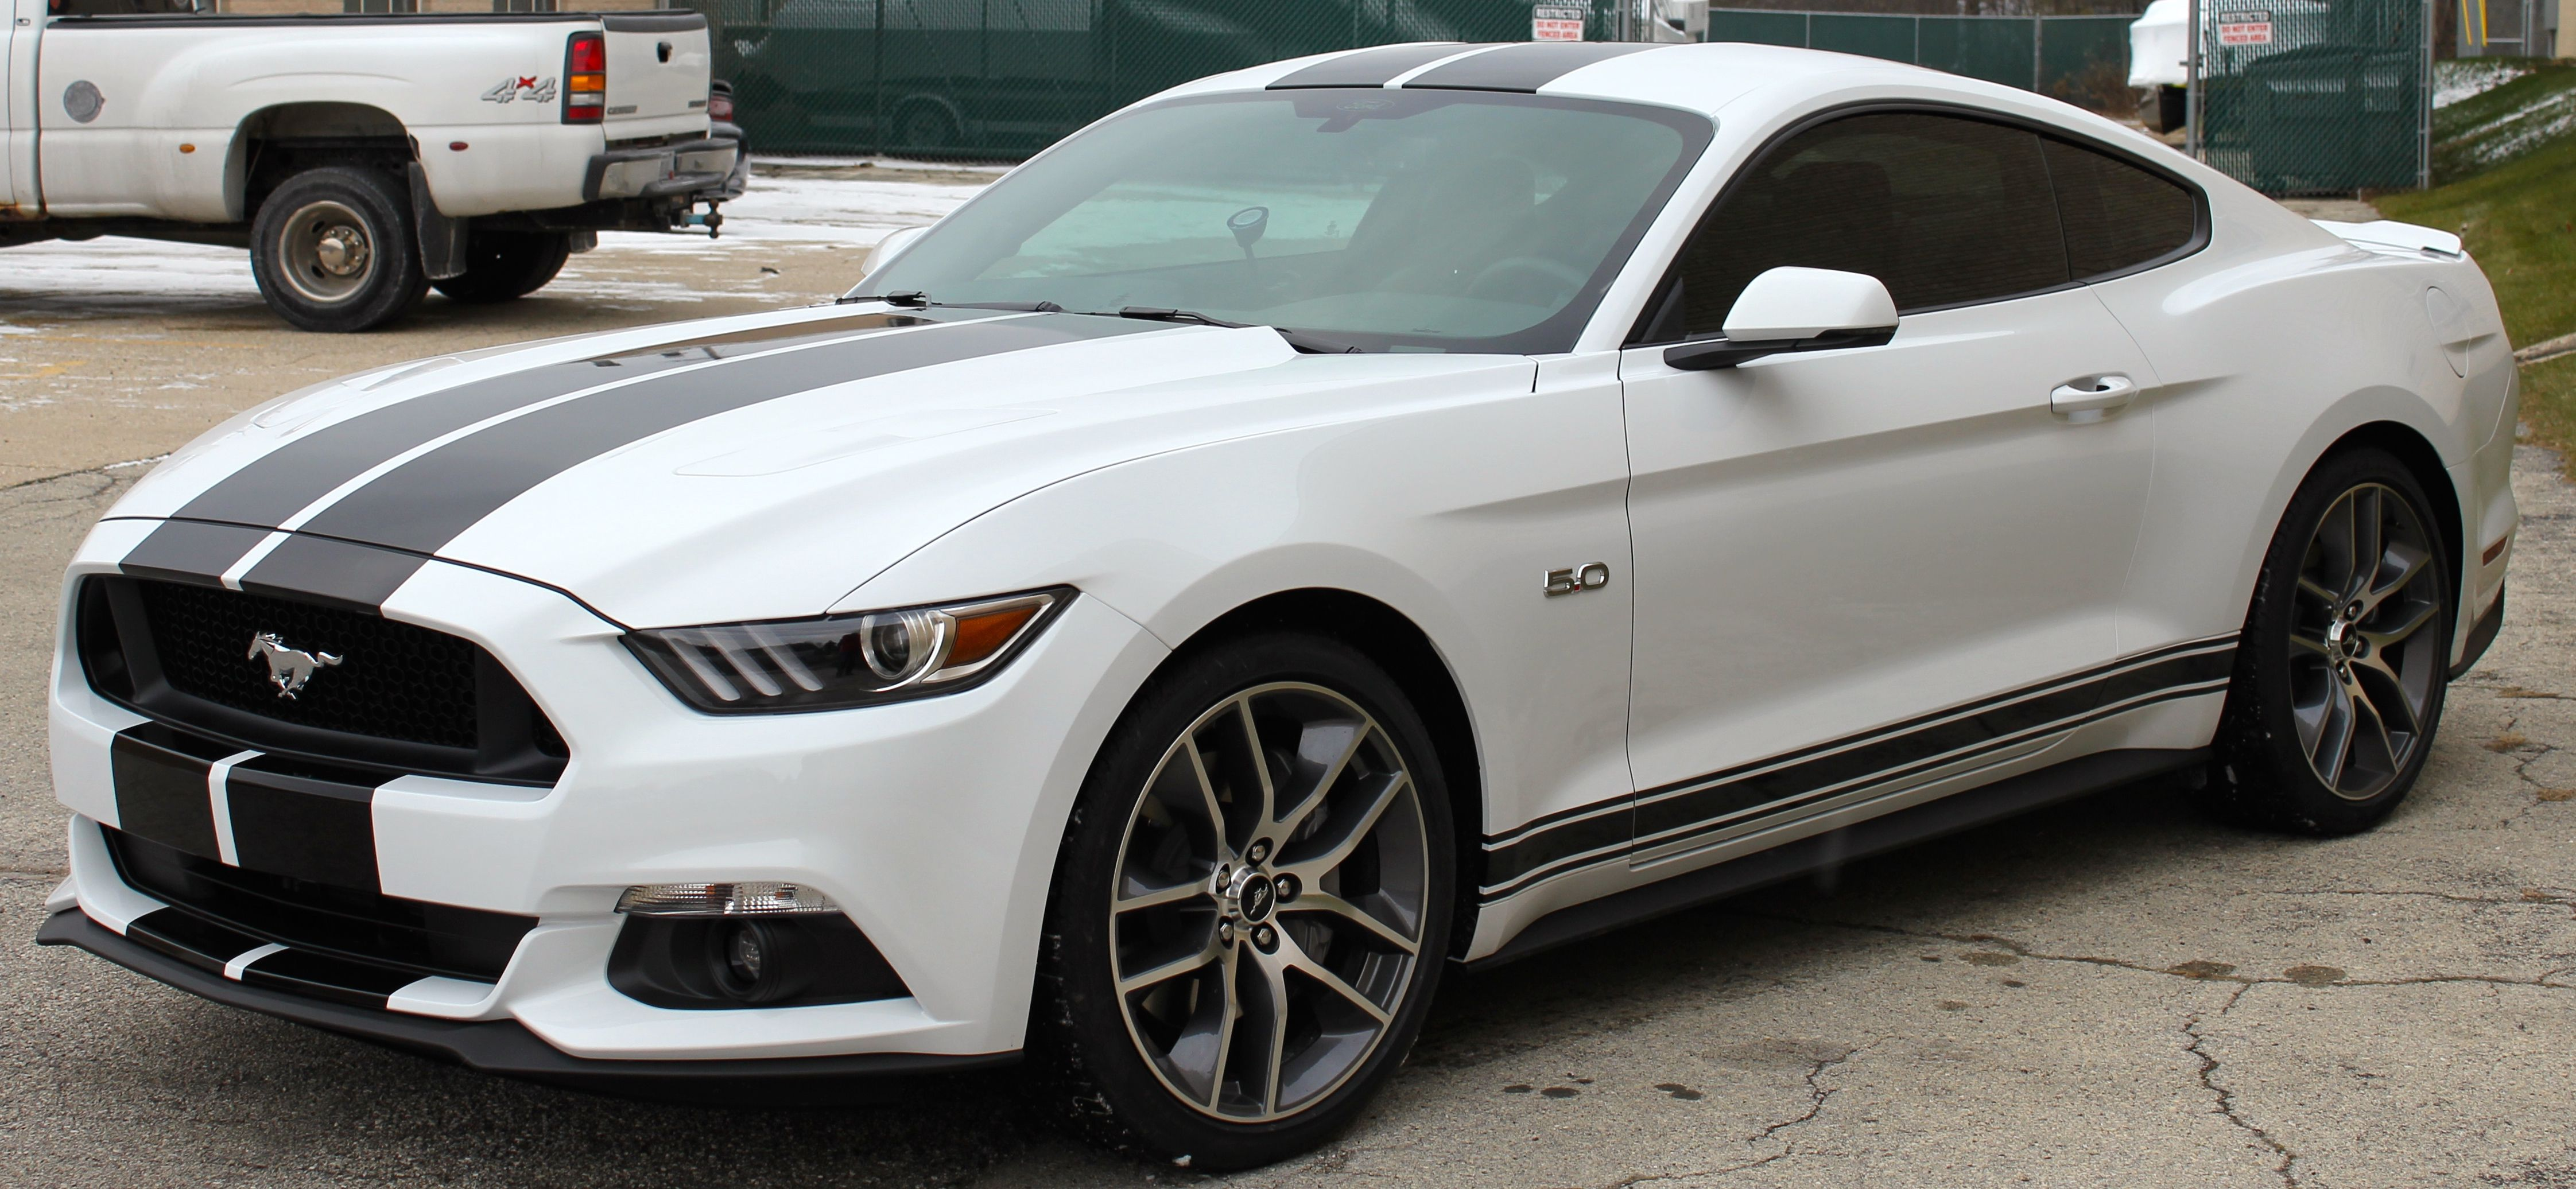 White mustang gt w black stripes side view